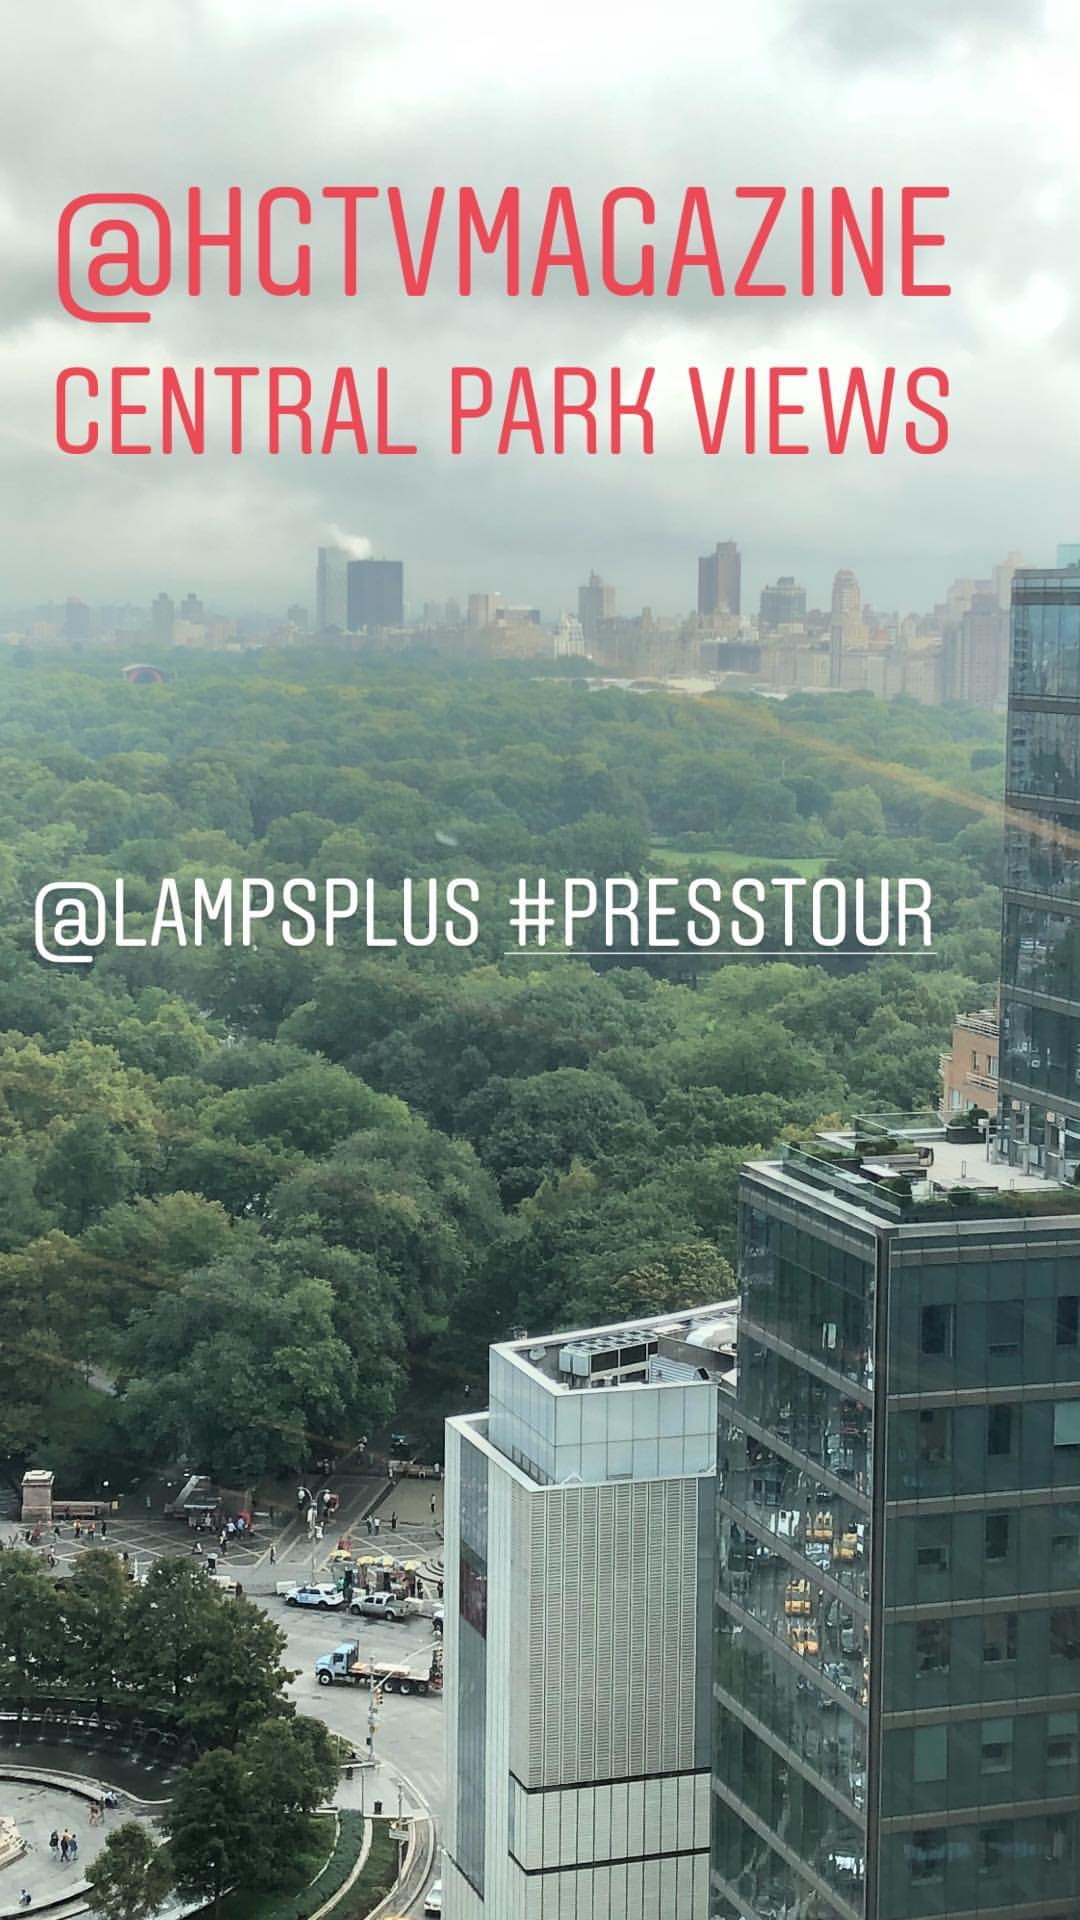 Central Park Views from HGTV Magazine Office in NYC